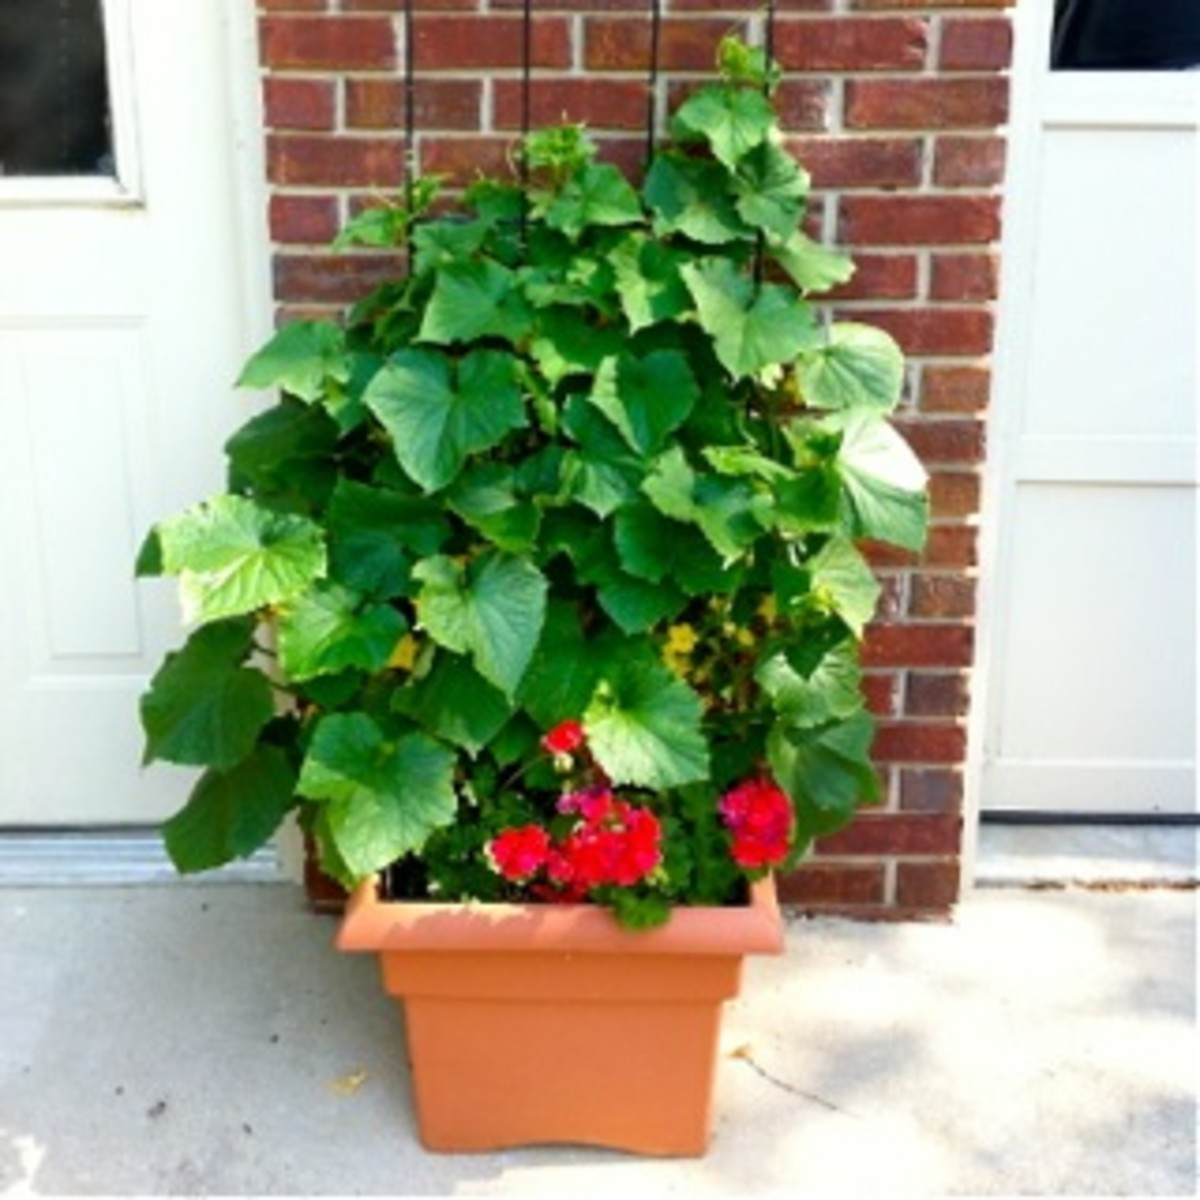 My square terra-cotta plastic pot was new in this photo.